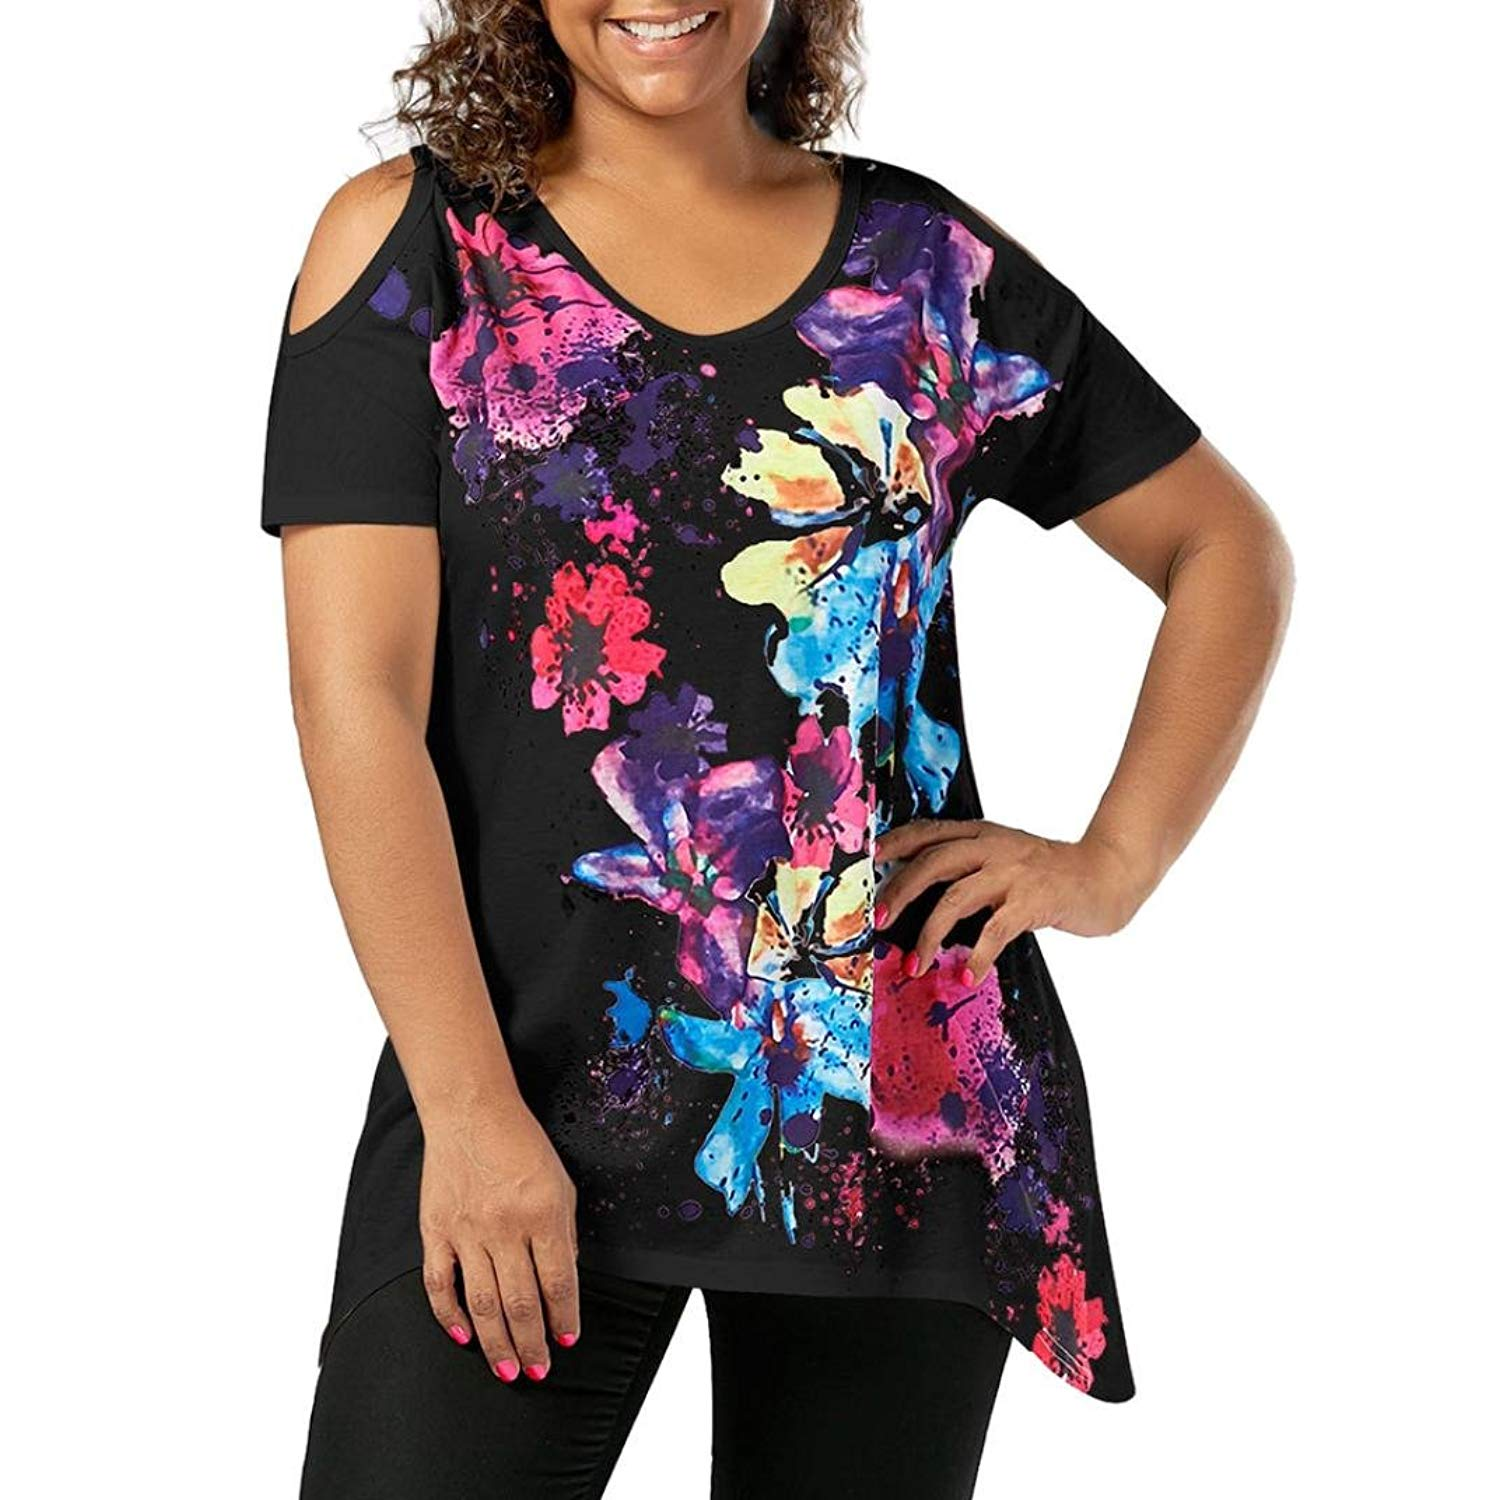 c49d20cb3f7 Get Quotations · Ninasill Clearance ! Hot Sale Plus Size Cold Shoulder  Floral Print Tank Tops Blouse